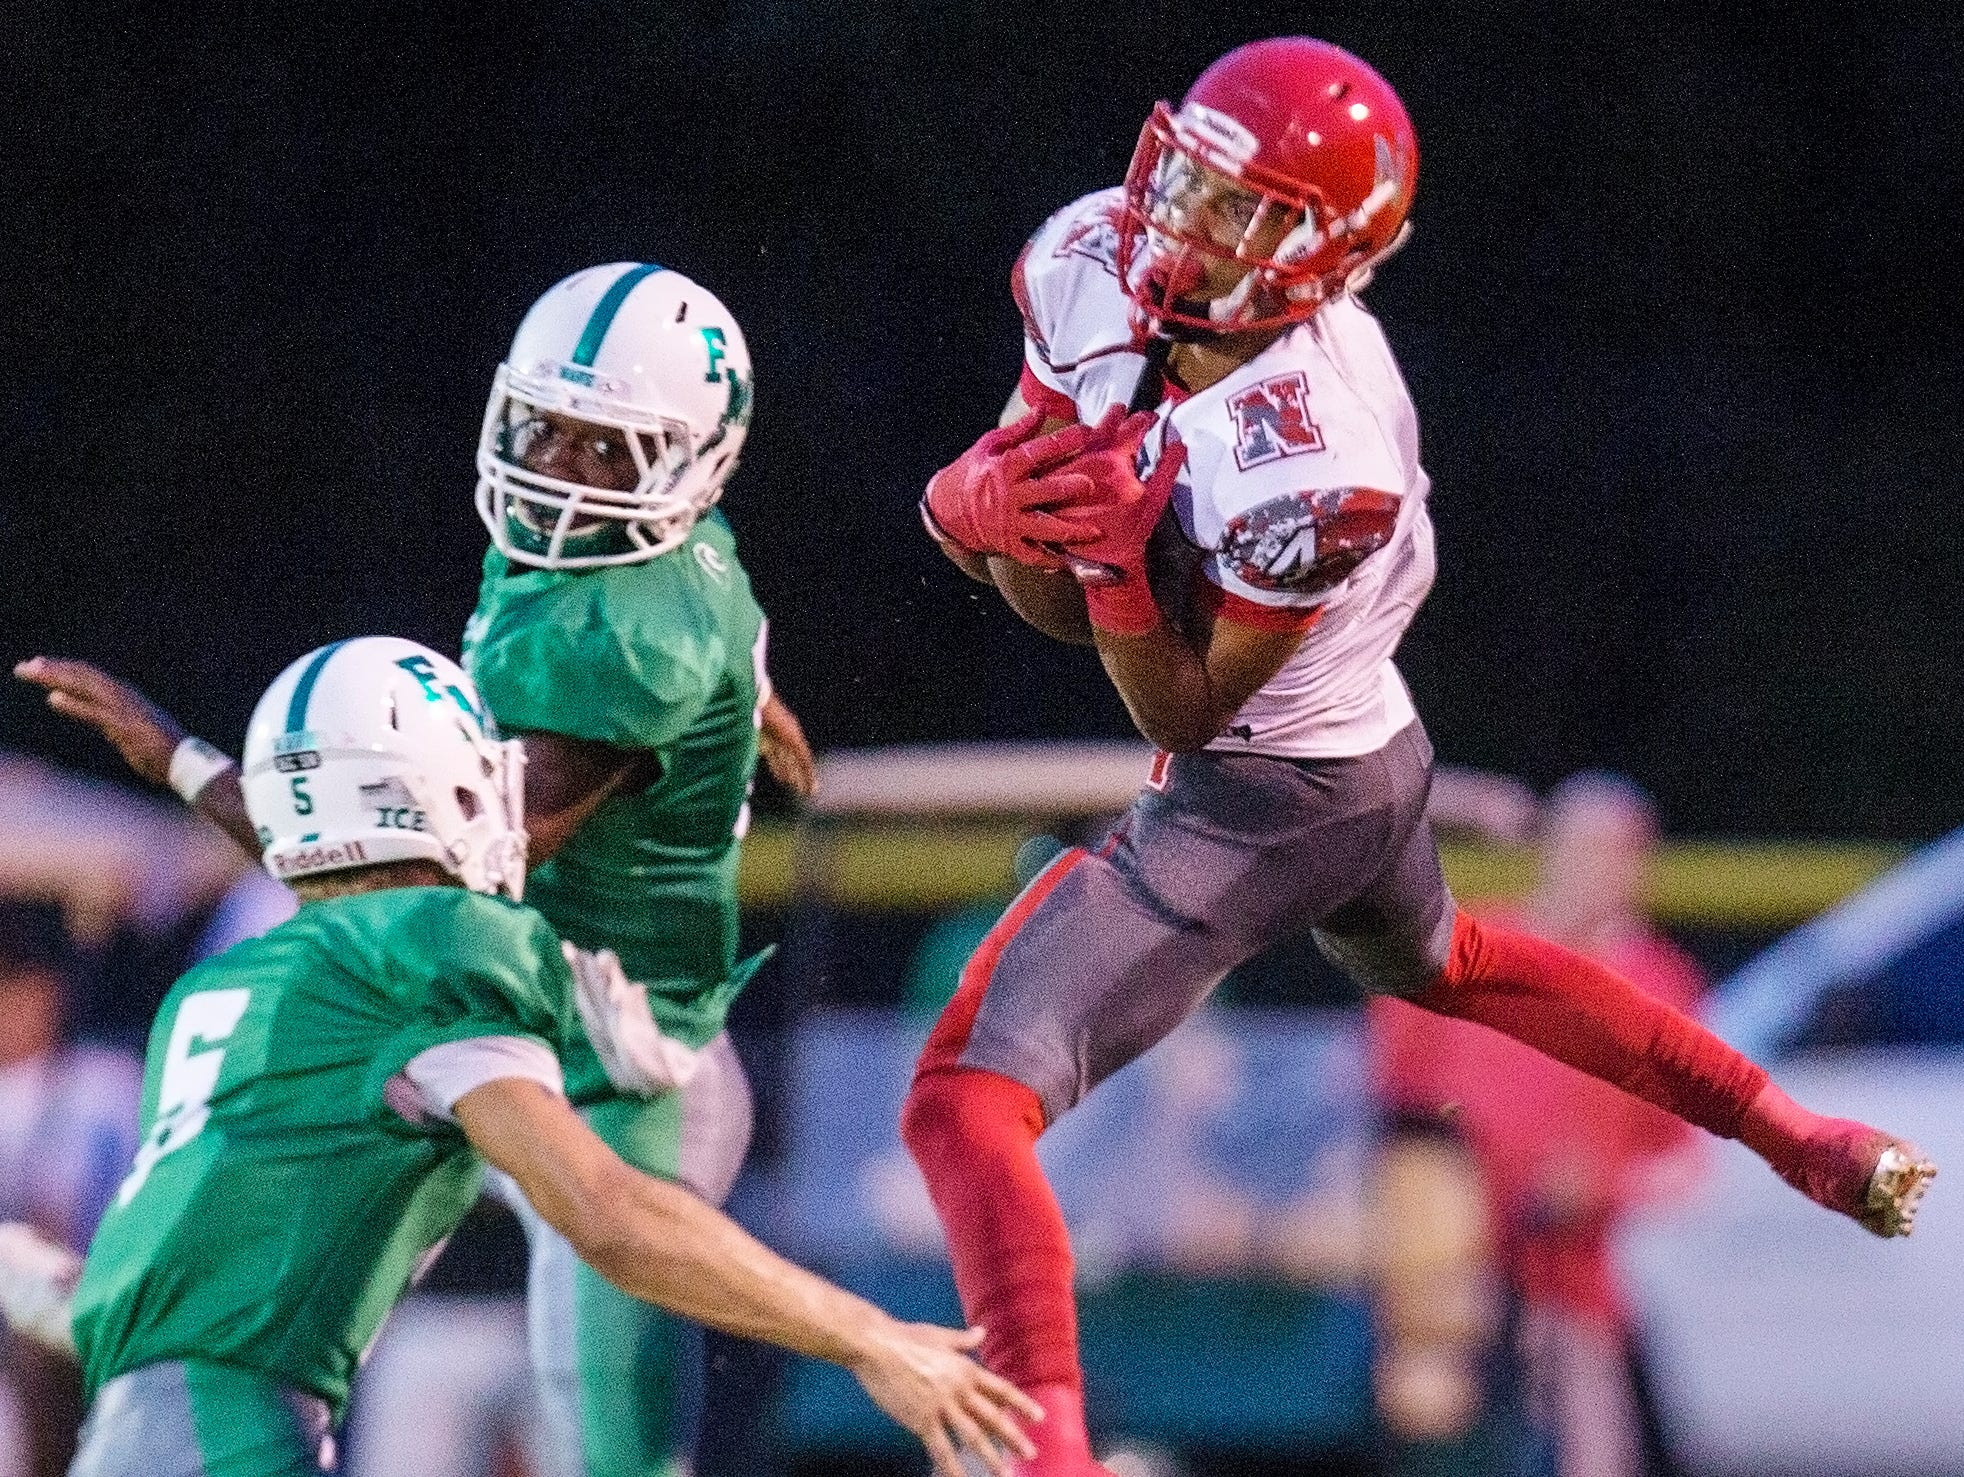 North Fort Myers High School's Joe Wilkins catches a pass against Fort Myers during first quarter play Friday at Fort Myers High School.